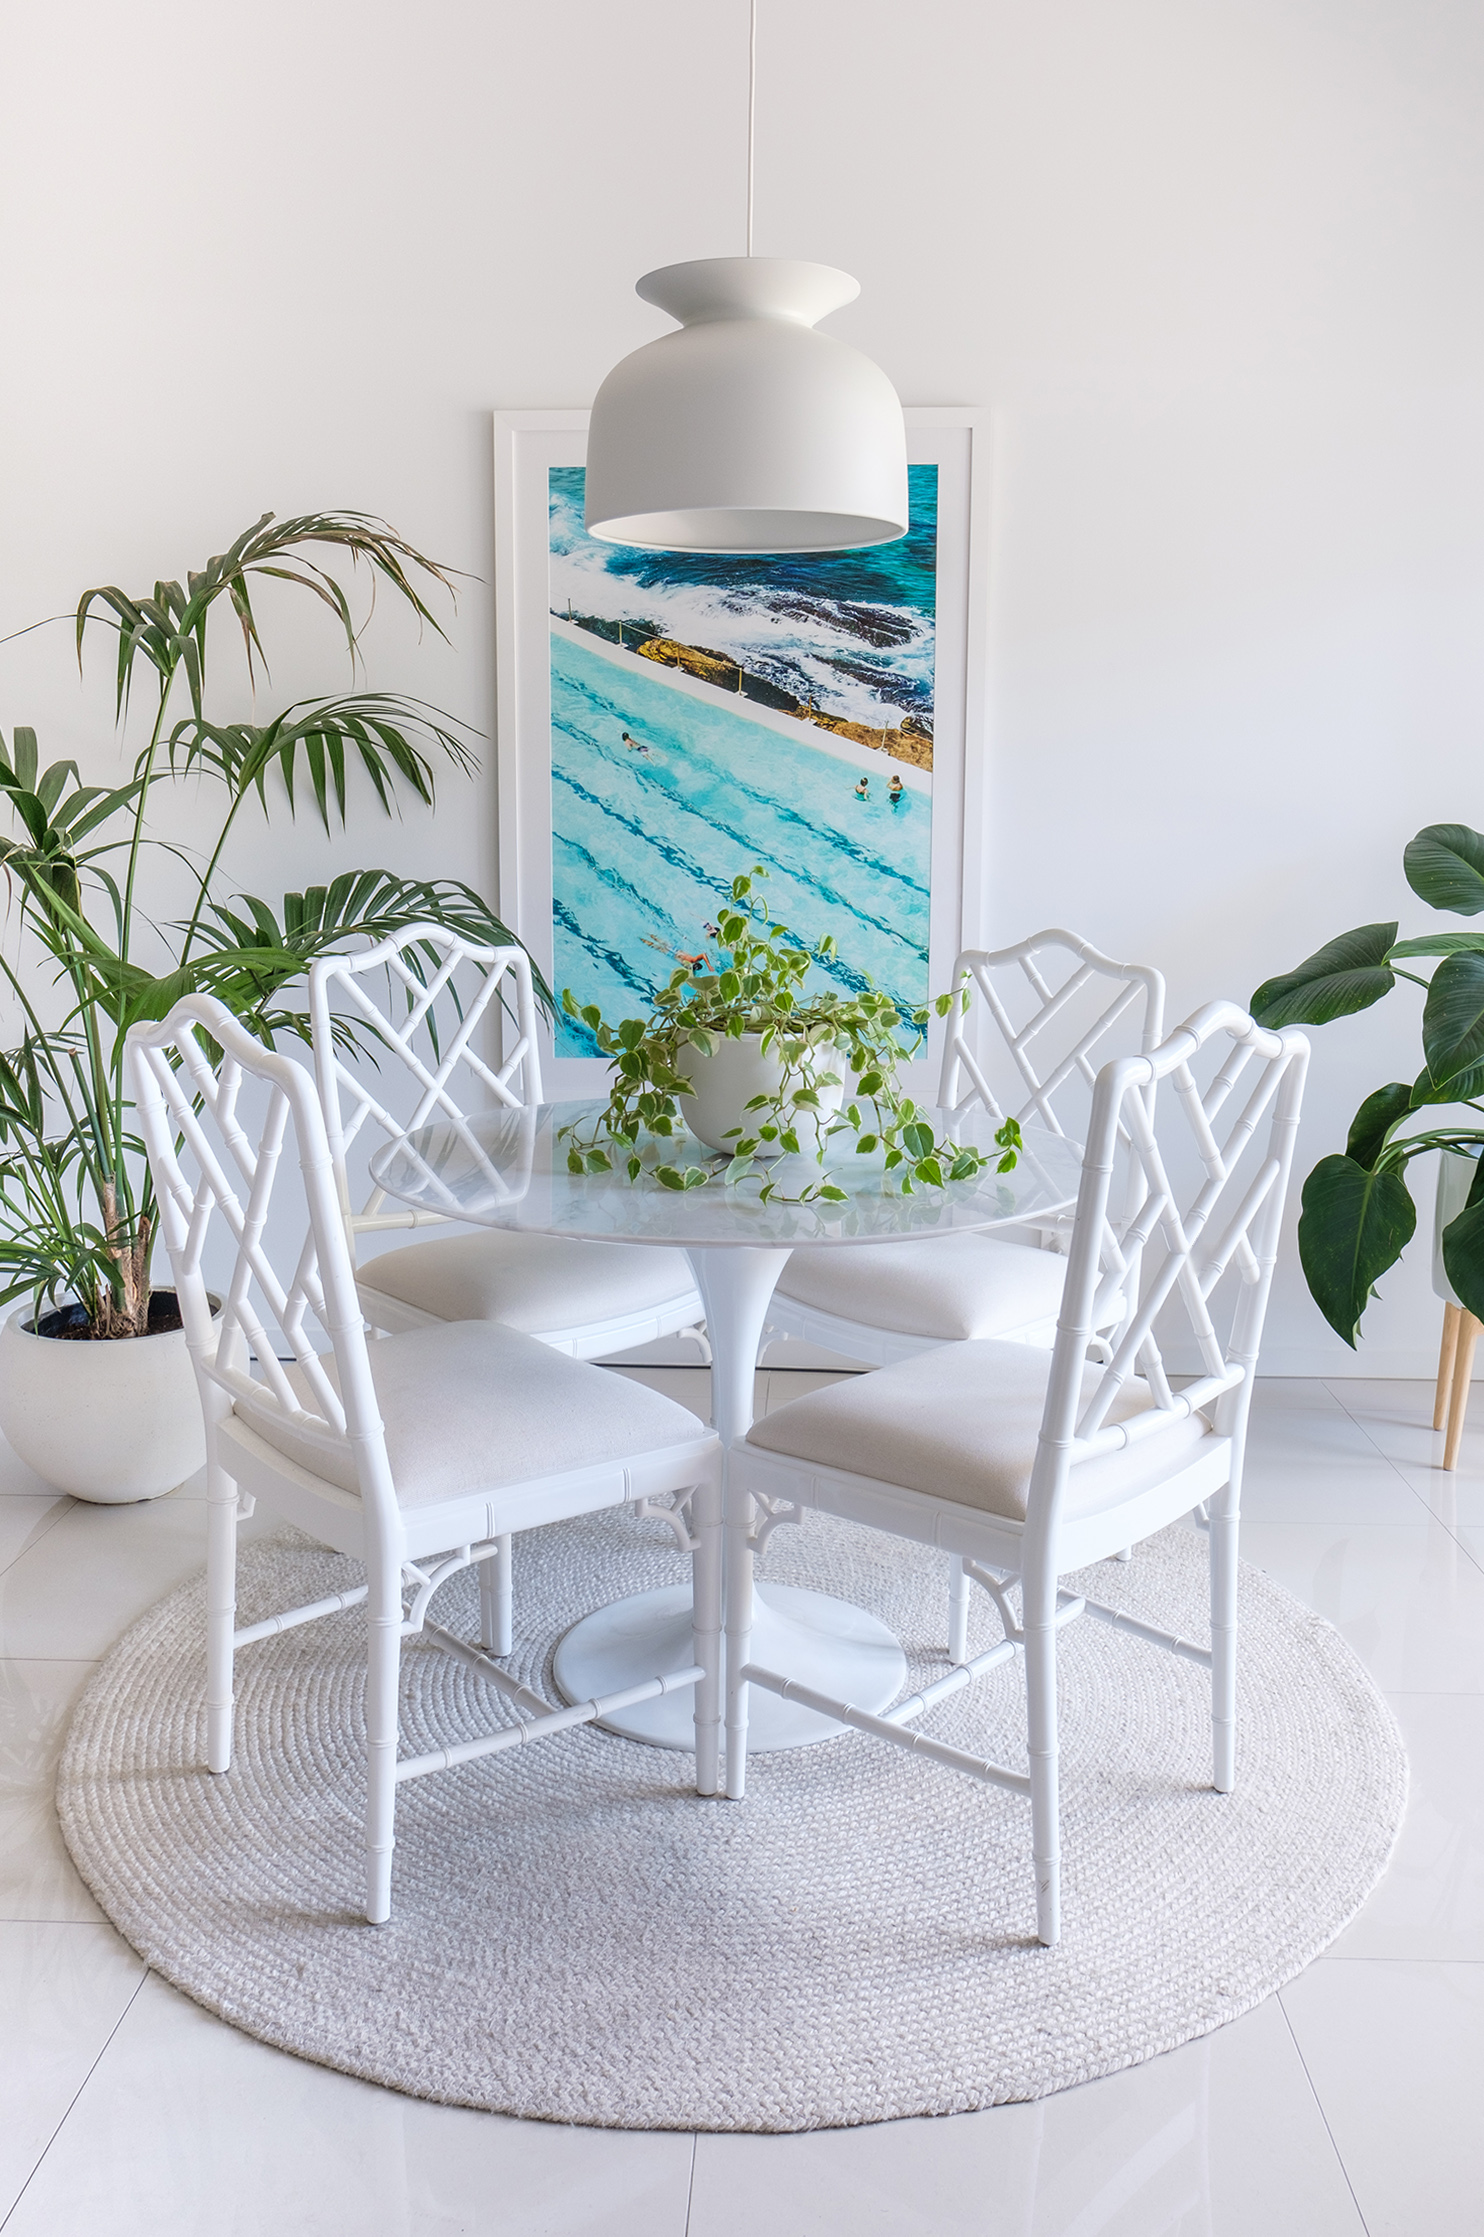 I also updated the art in my dining area with a photographic print by Kara Rosenlund